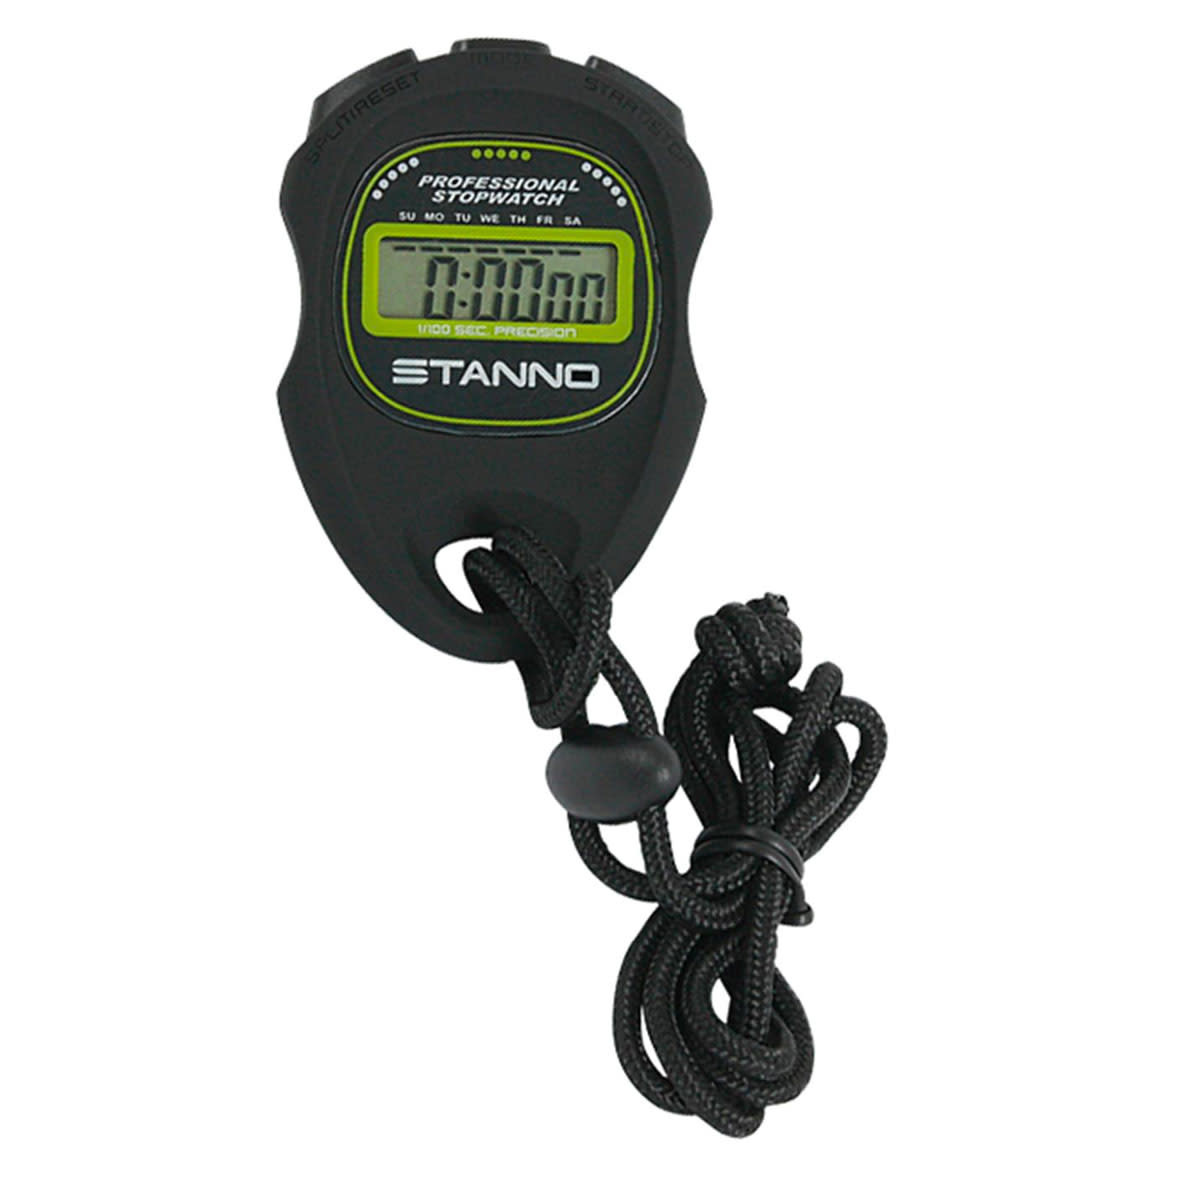 Stanno STANNO Stopwatch